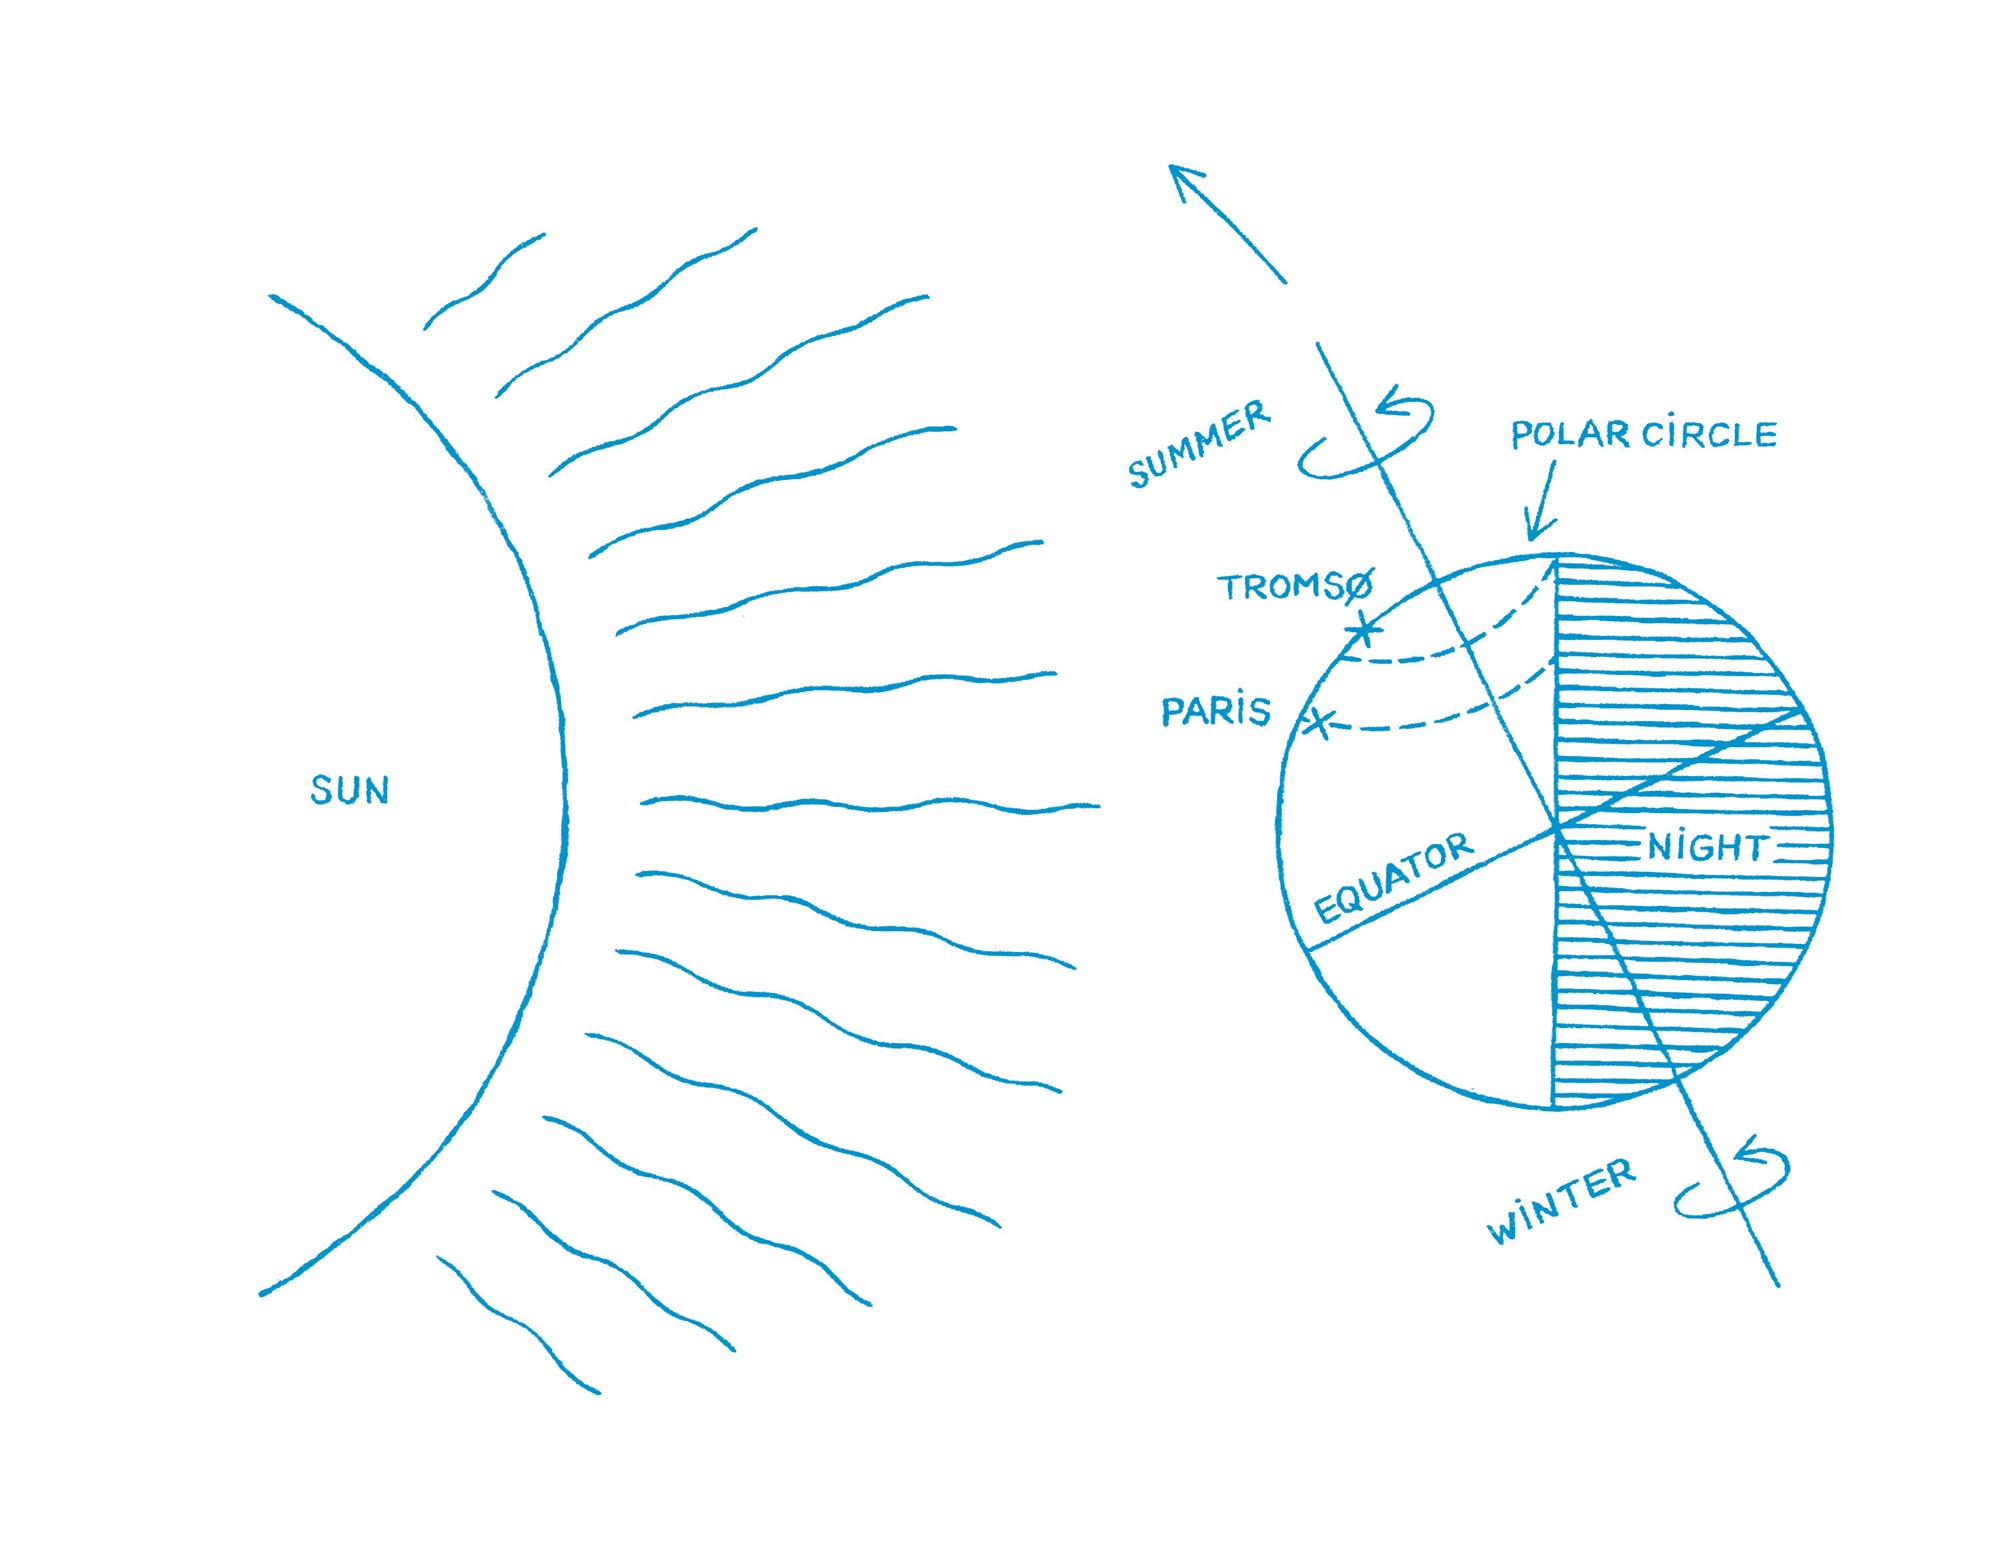 An illustration explaining the midnight sun phenomenon.